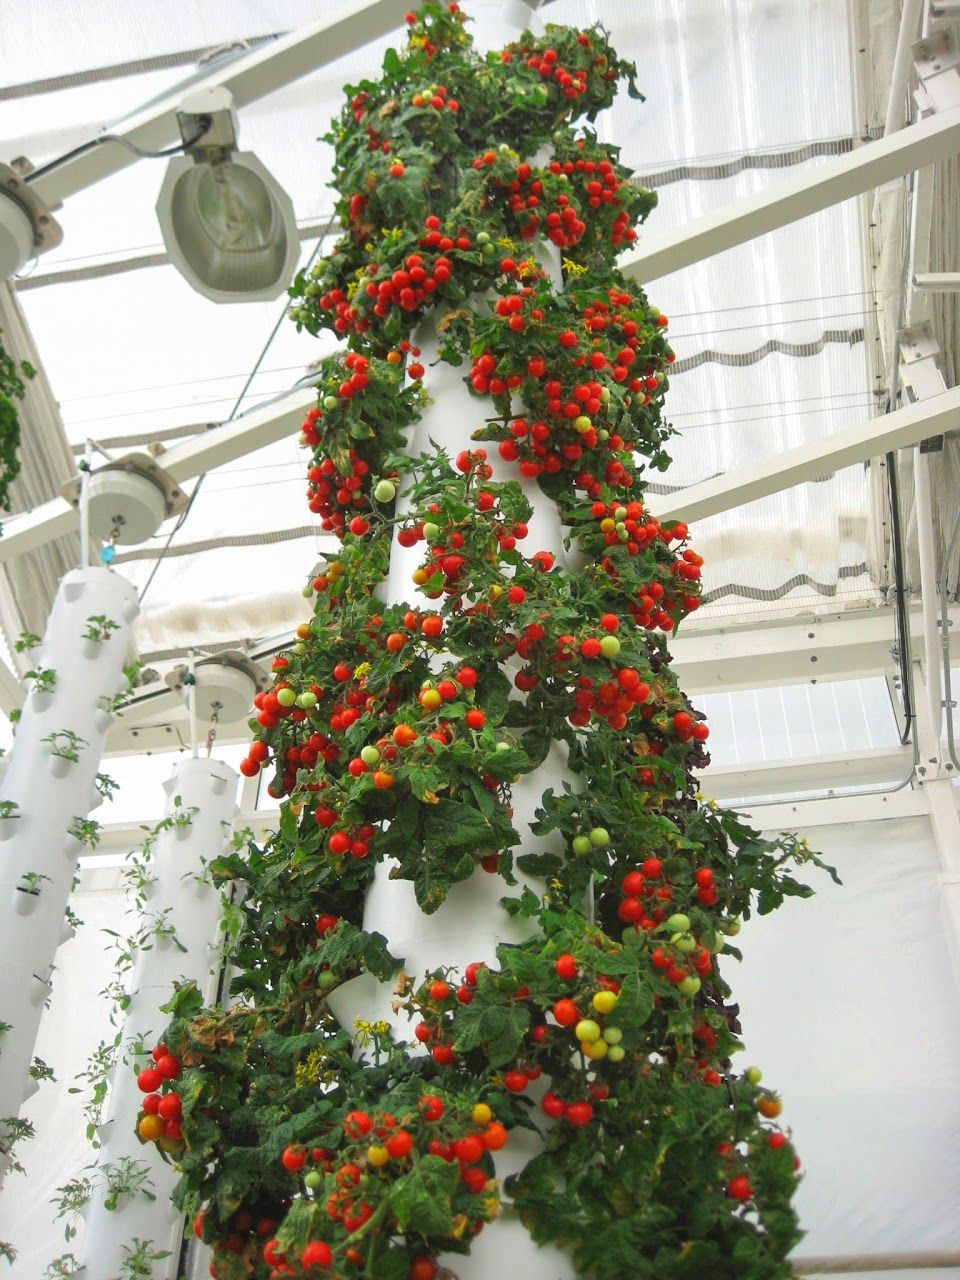 60 Tomato Plants Grown In A Single Tower Garden Http